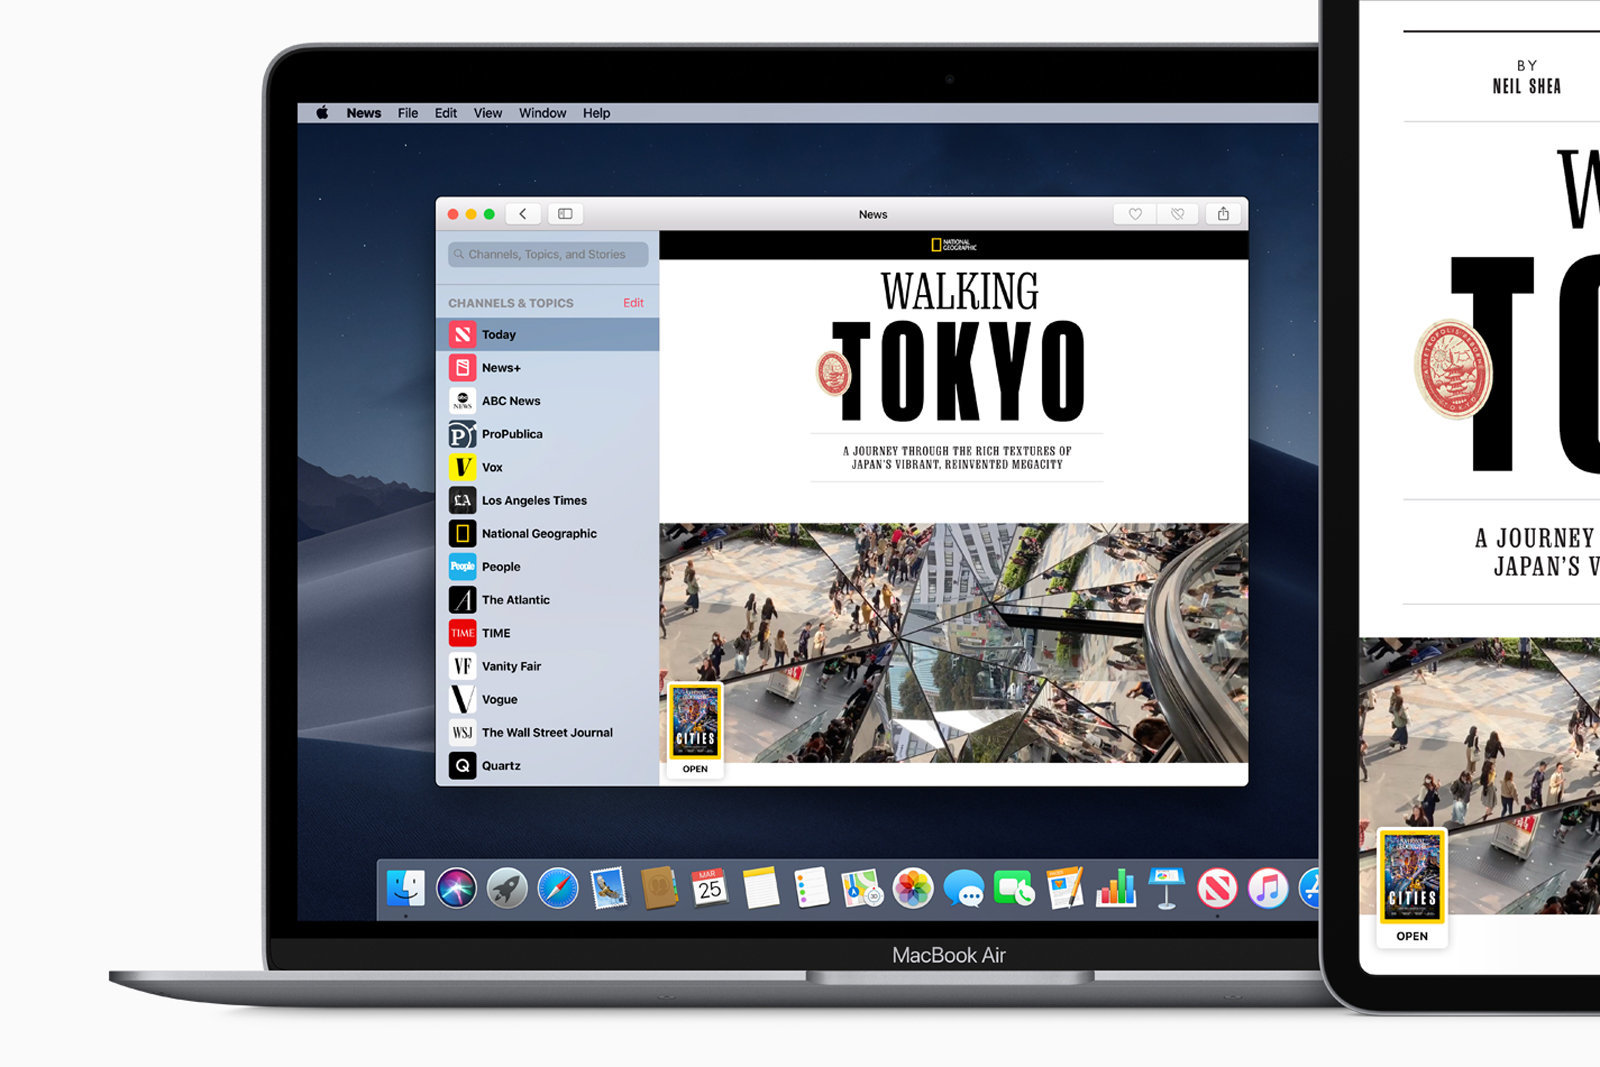 A big mistake has occurred in the Apple News + Desktop application